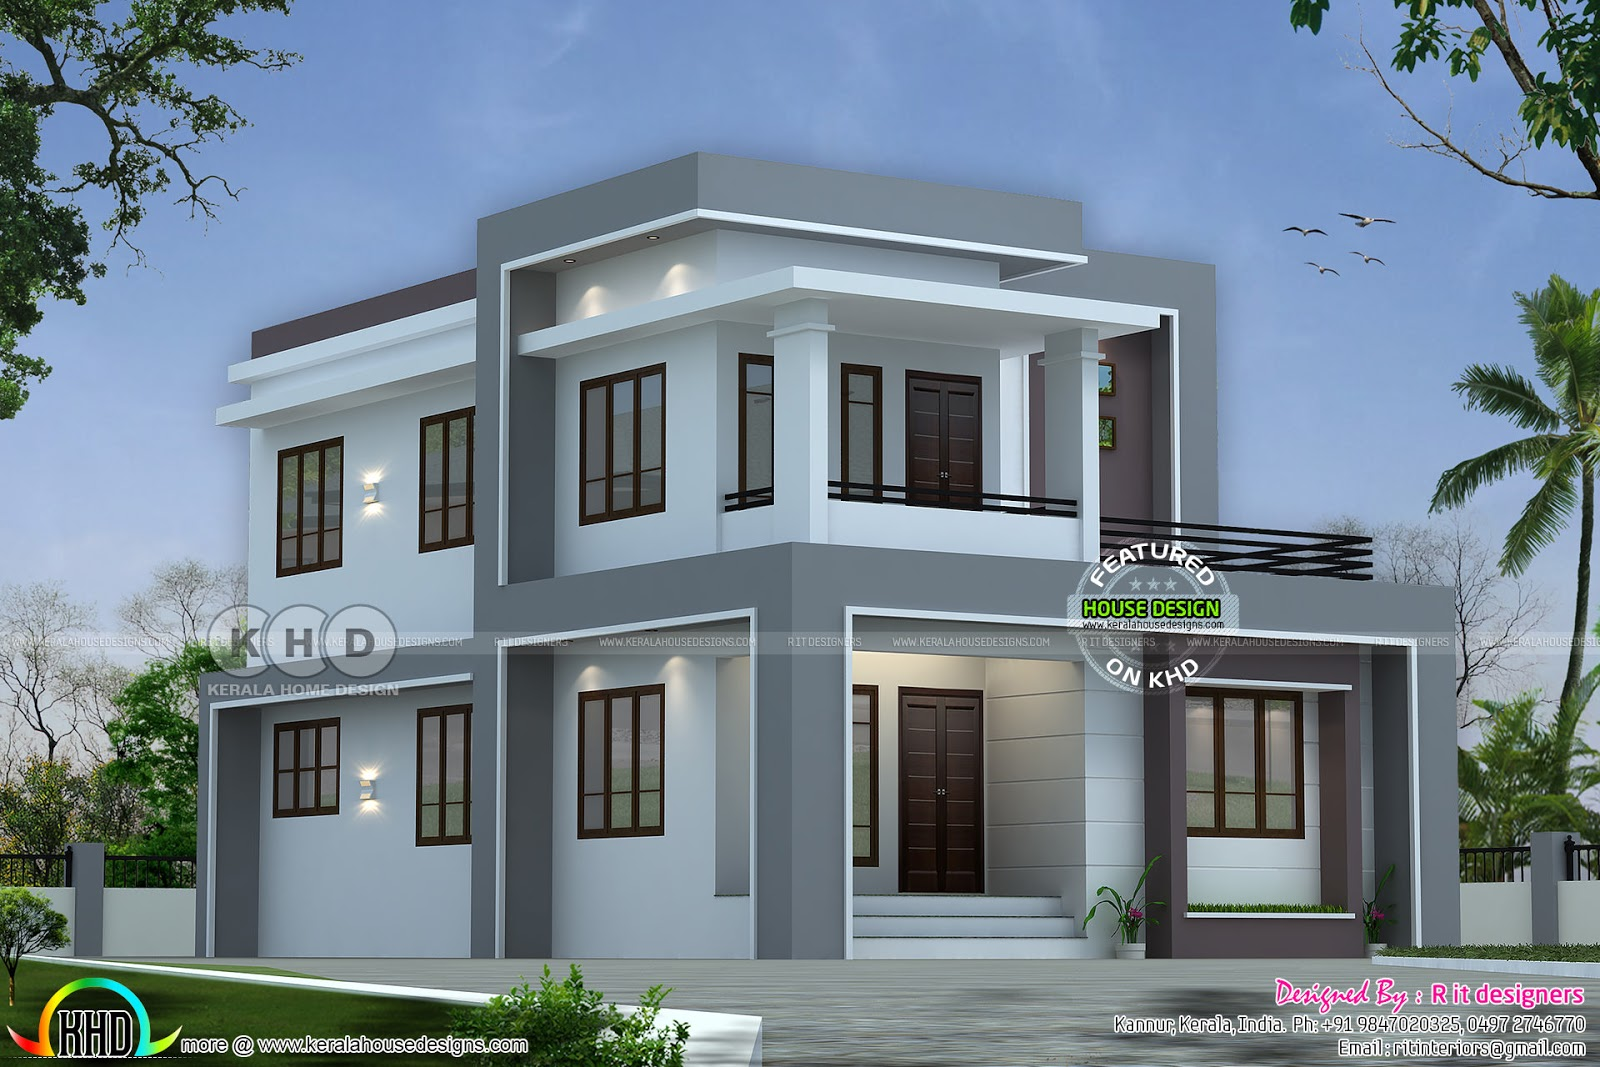 30 Lakhs Cost Estimated Home March 2018 Kerala Home Design